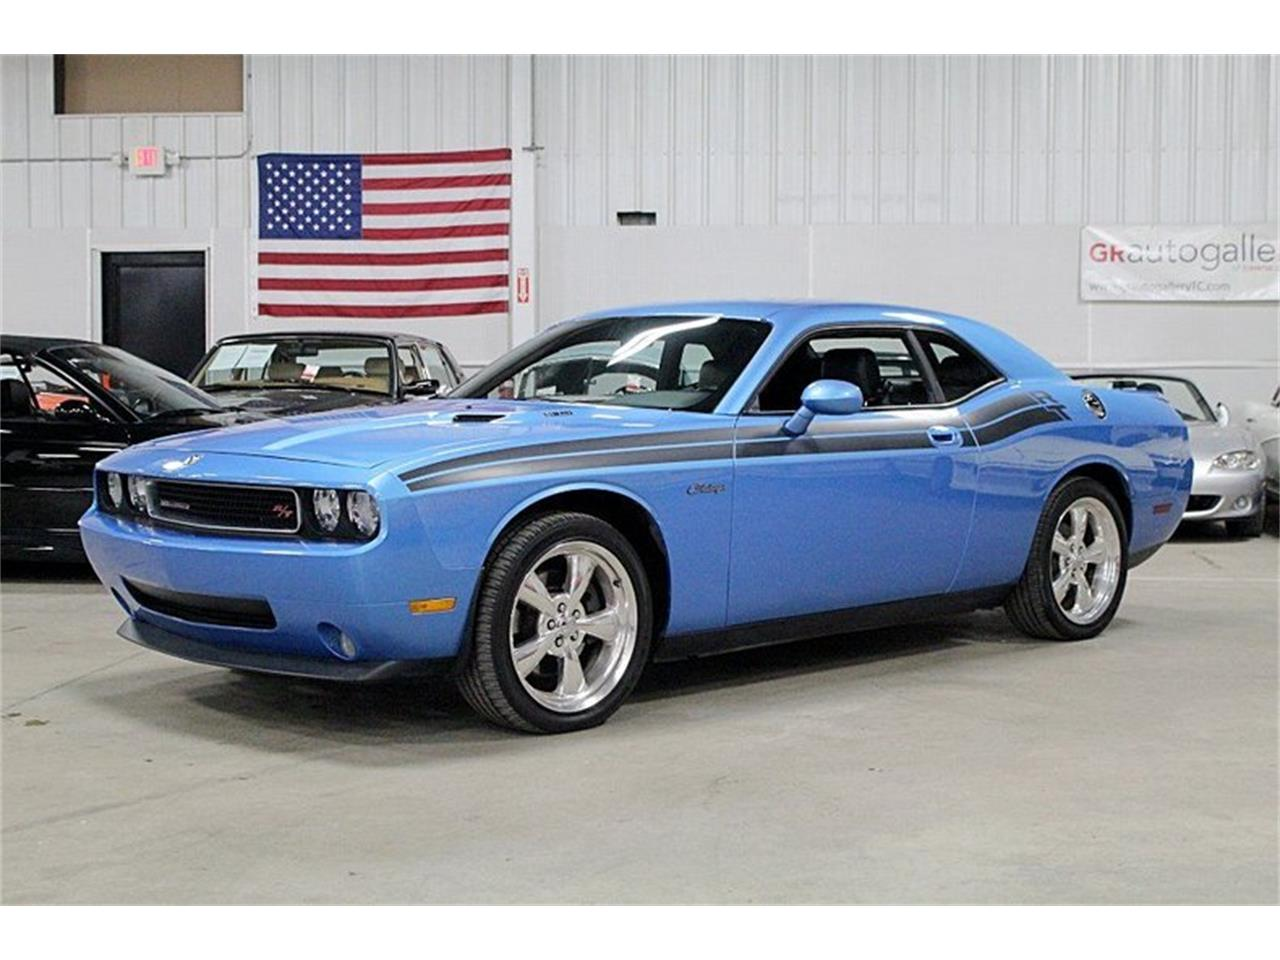 for sale 2010 dodge challenger in kentwood, michigan cars - grand rapids, mi at geebo